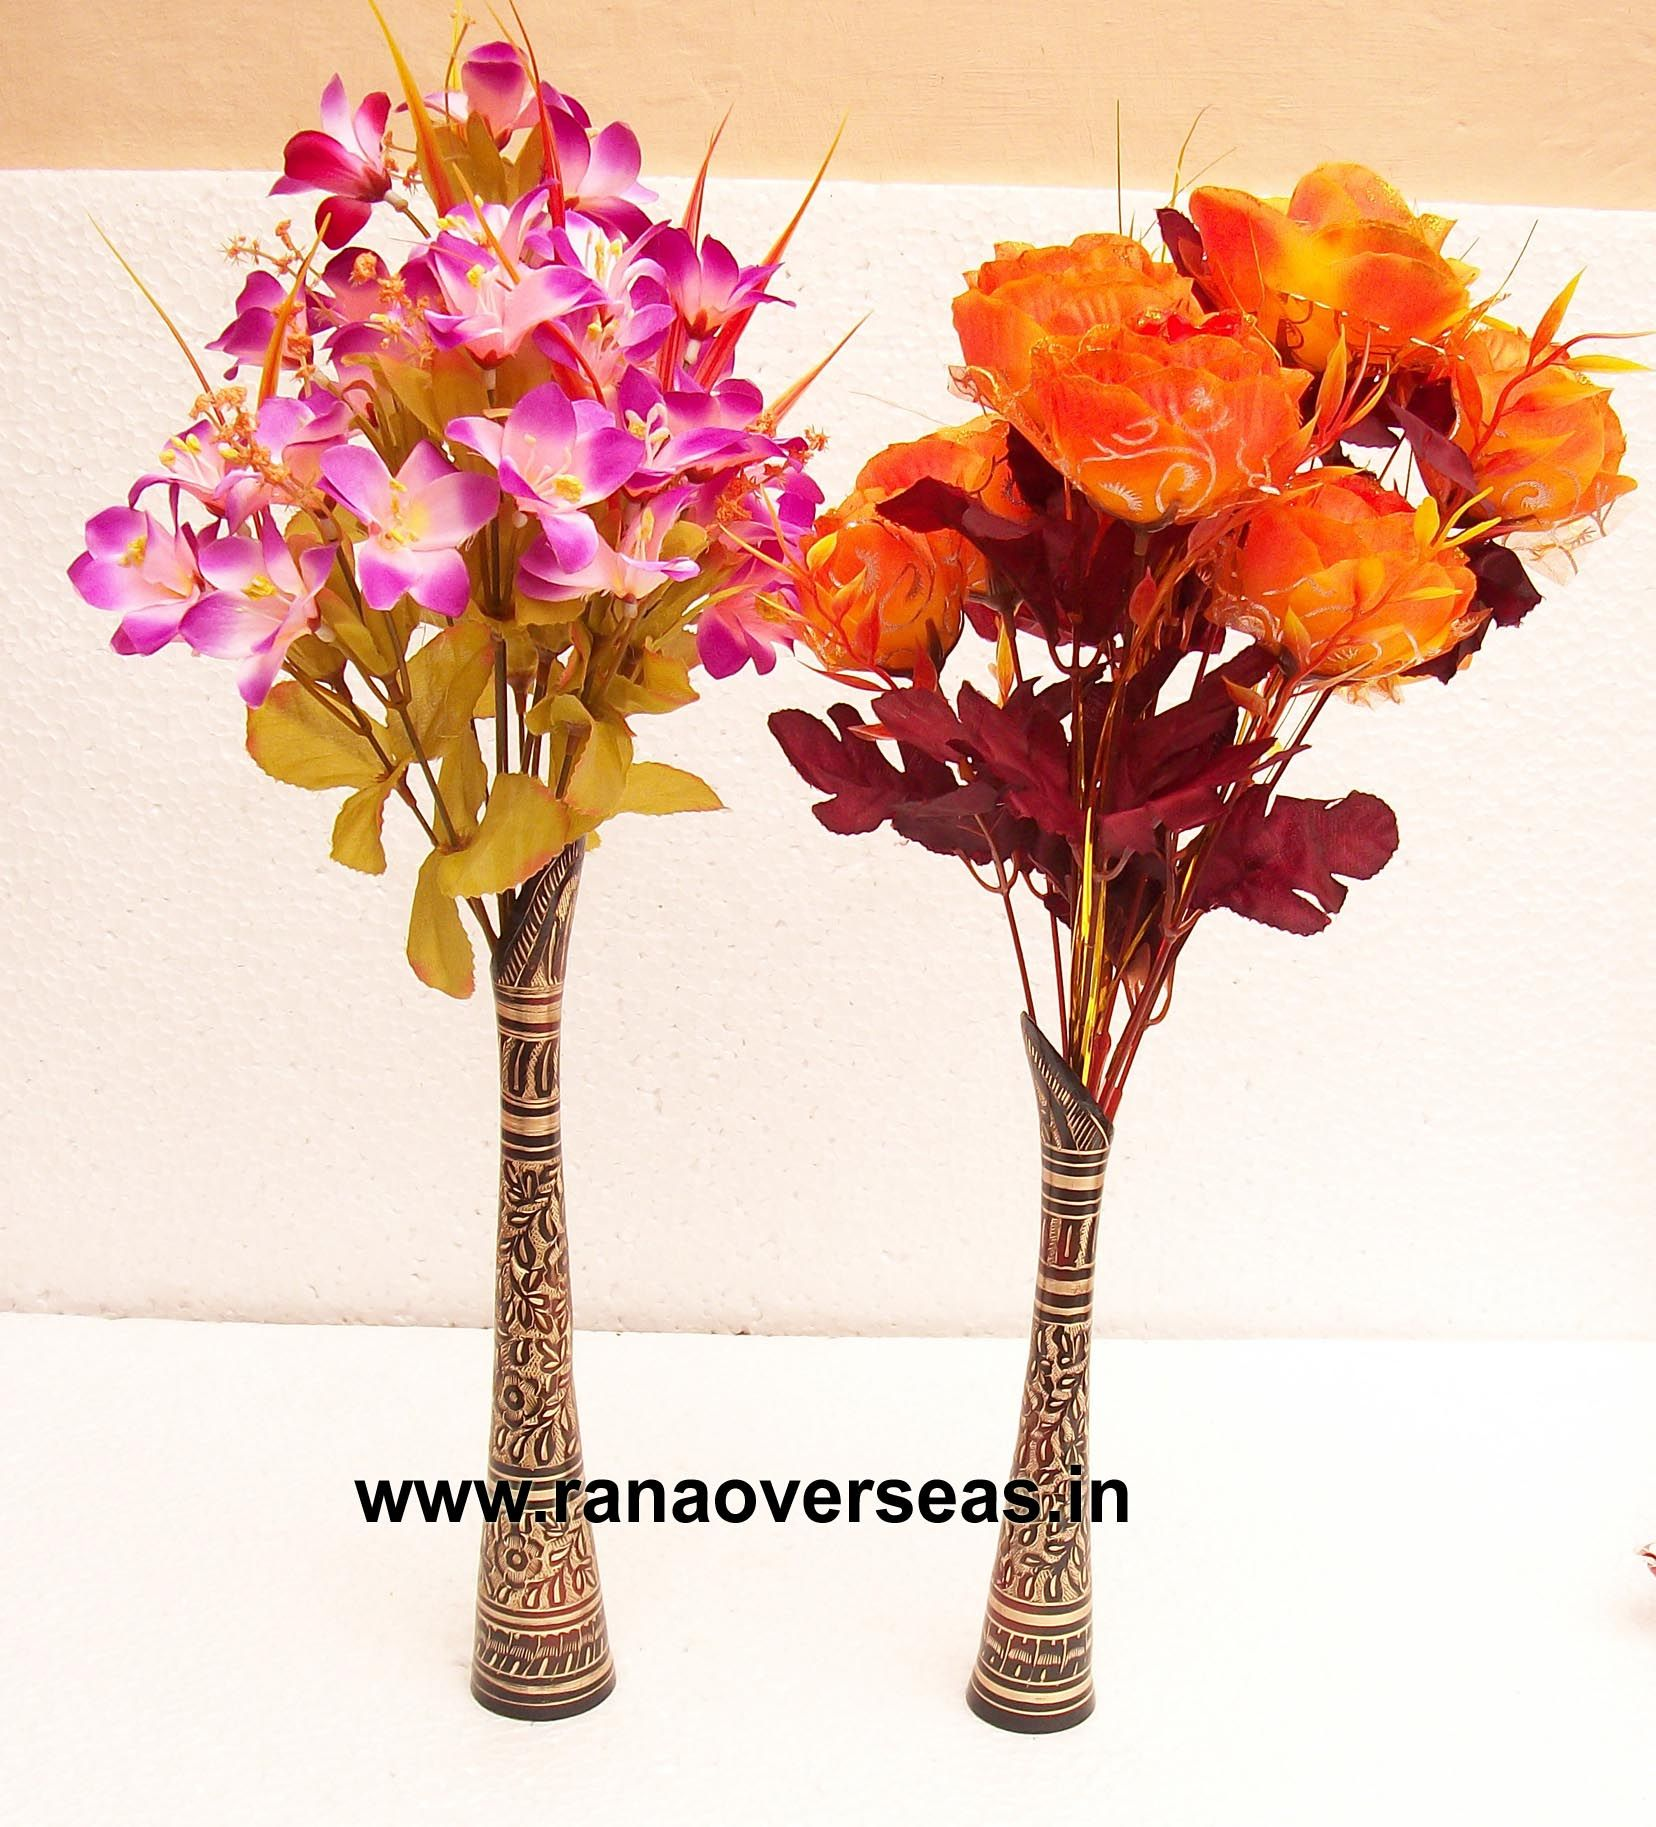 flower the of pleasingly place vases manner picture see designs wonderful pictures graceful will perfect adding right pleased in make shape brand arrangements flowers beauty vase